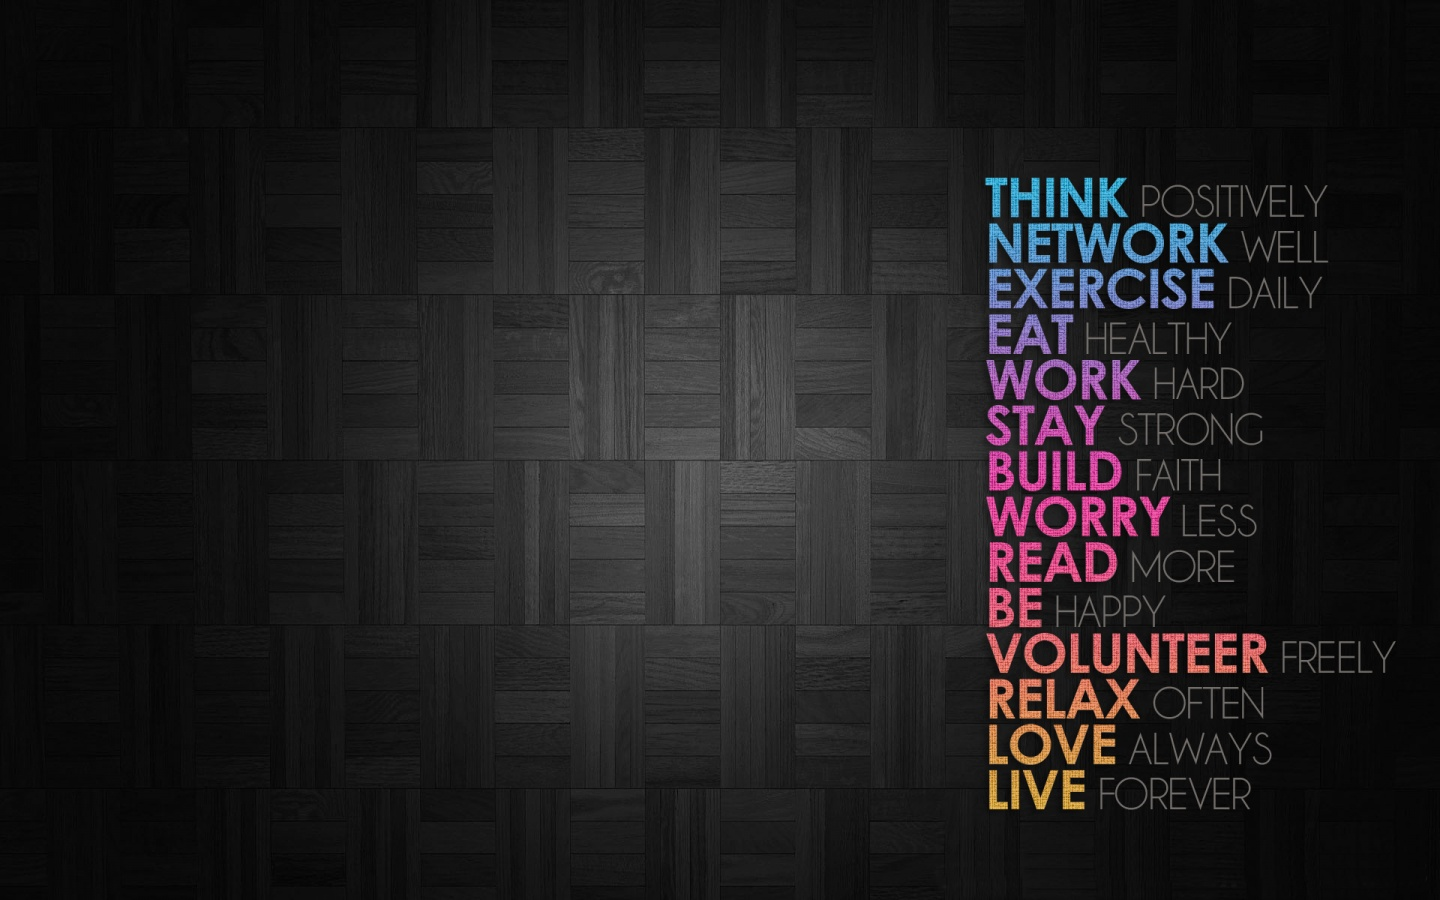 Positive Attitude Wallpapers - WallpaperSafari